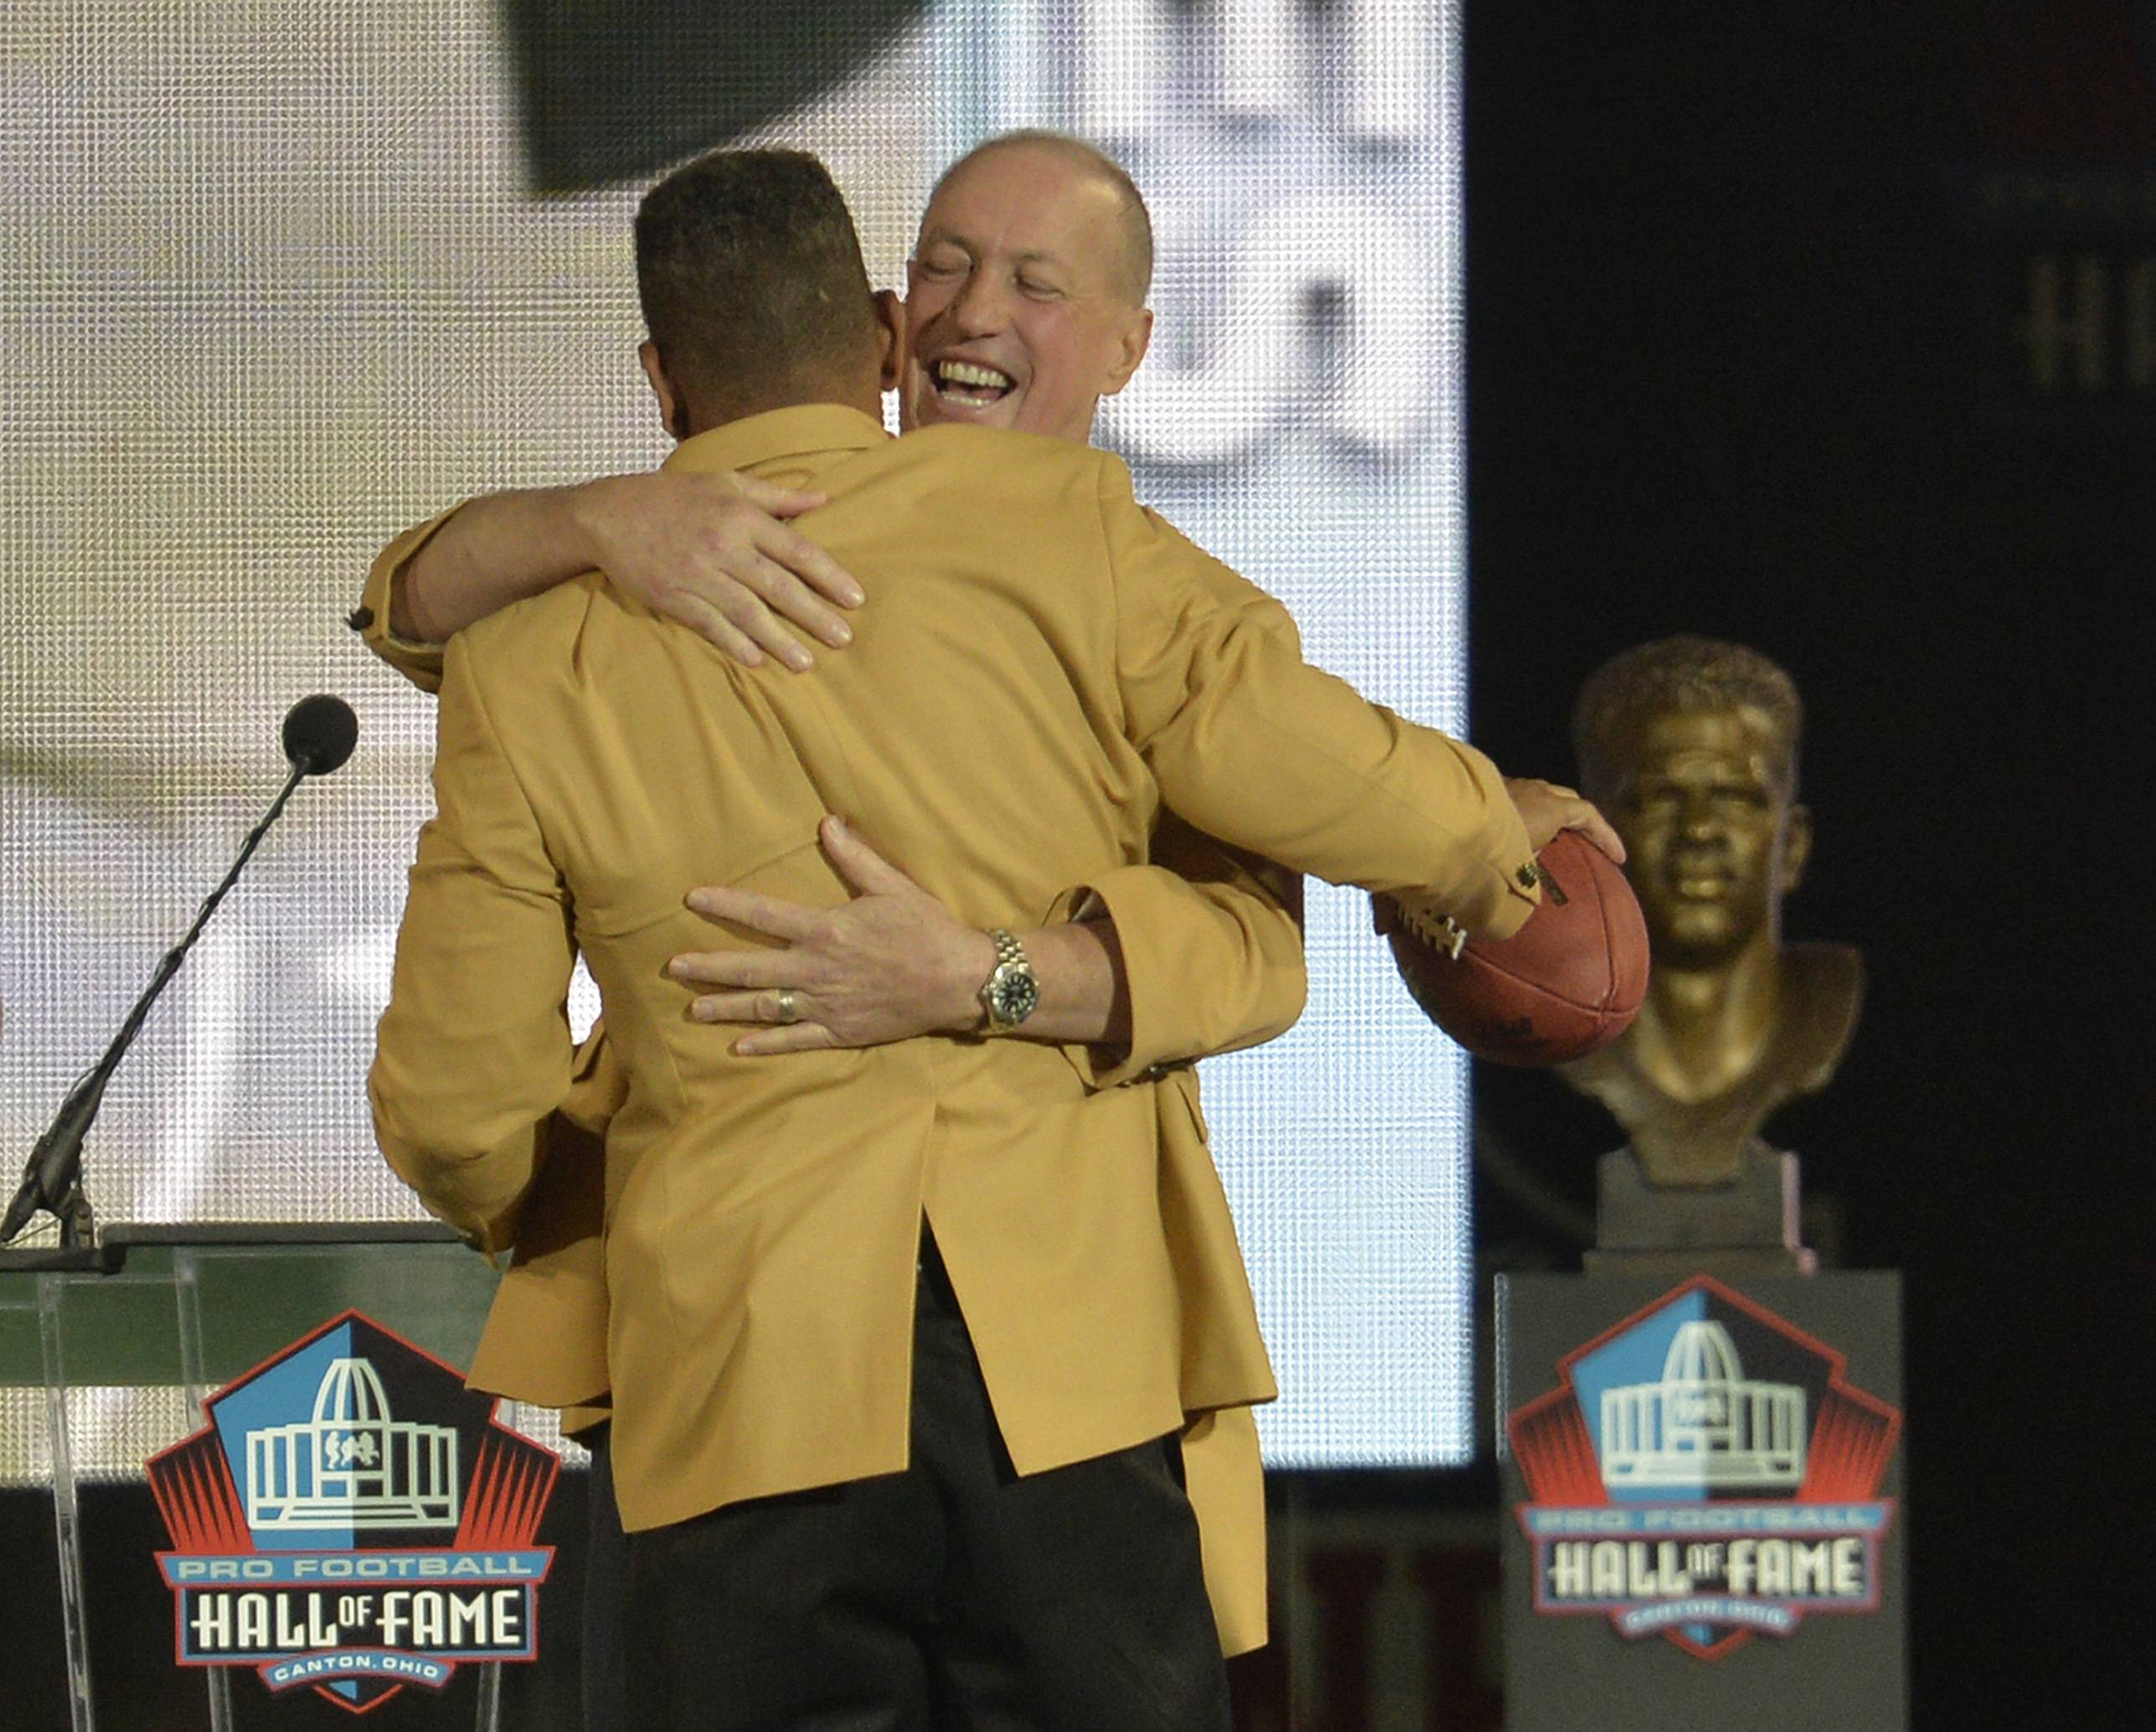 Former Buffalo Bills quarterback Jim Kelly, back, hugs inductee Andre Reed during the Pro Football Hall of Fame enshrinement ceremony Saturday in Canton, Ohio.